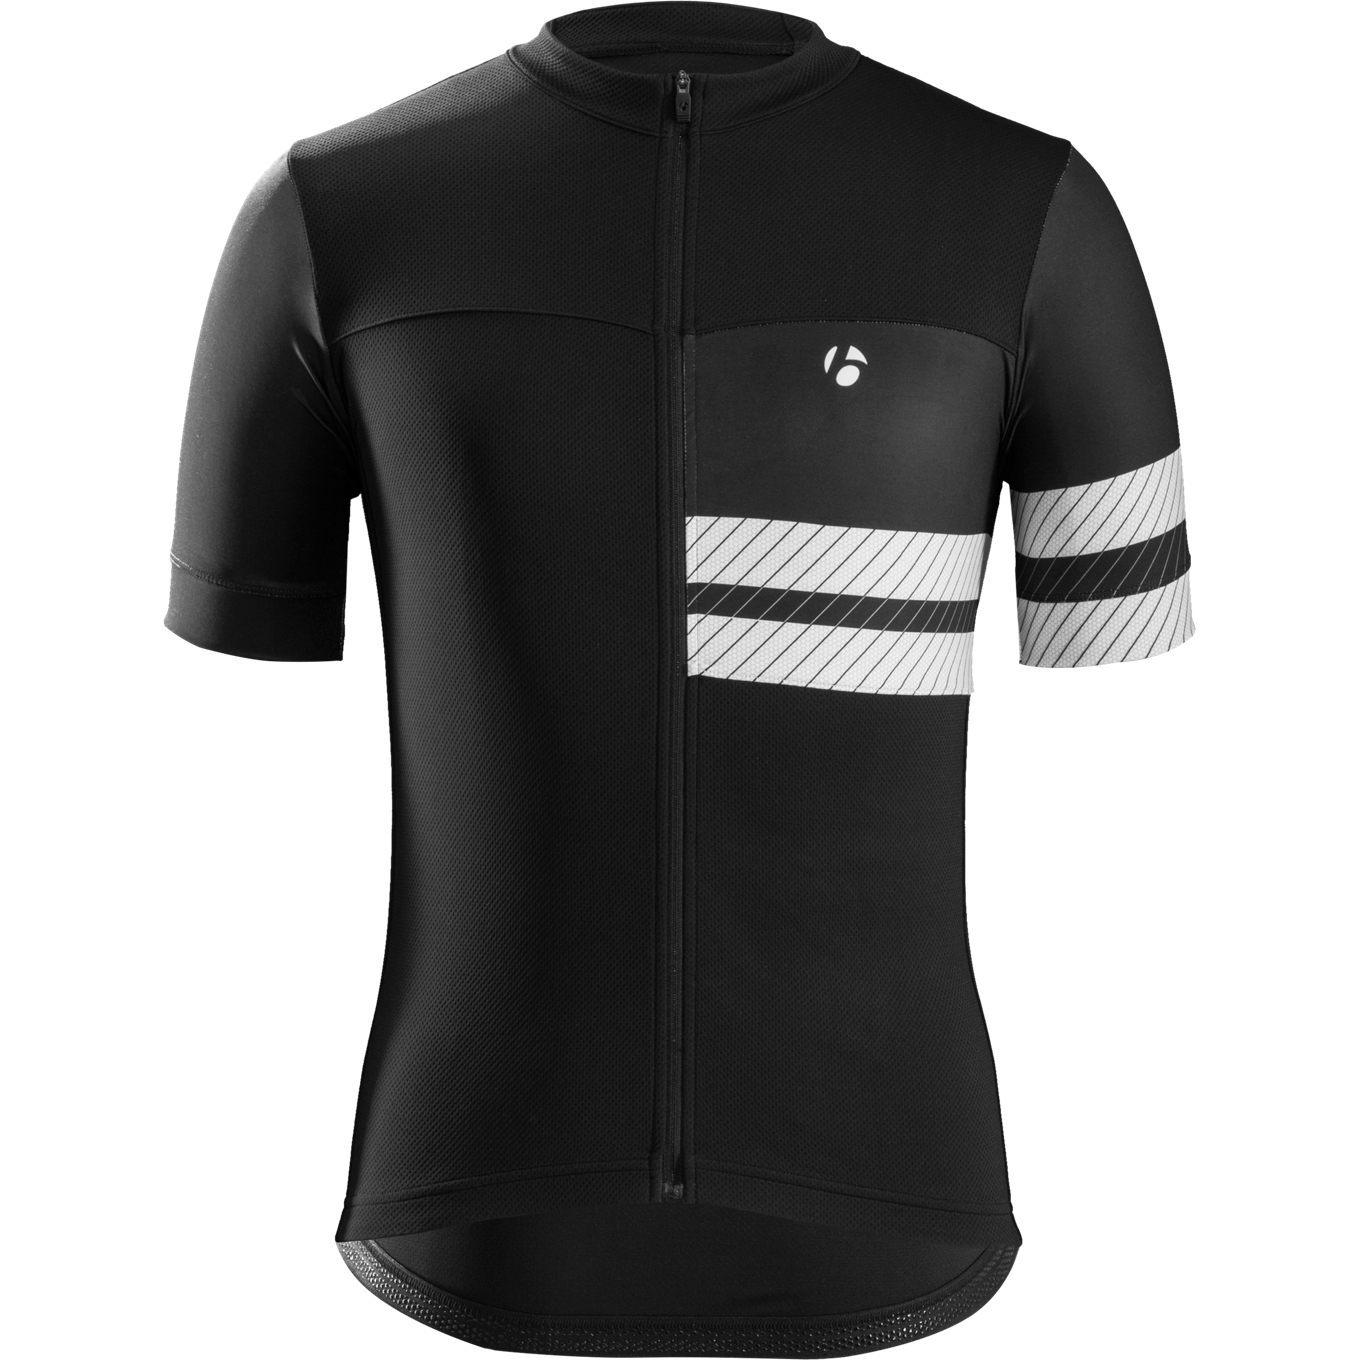 Image result for moisture wicking cycling jersey